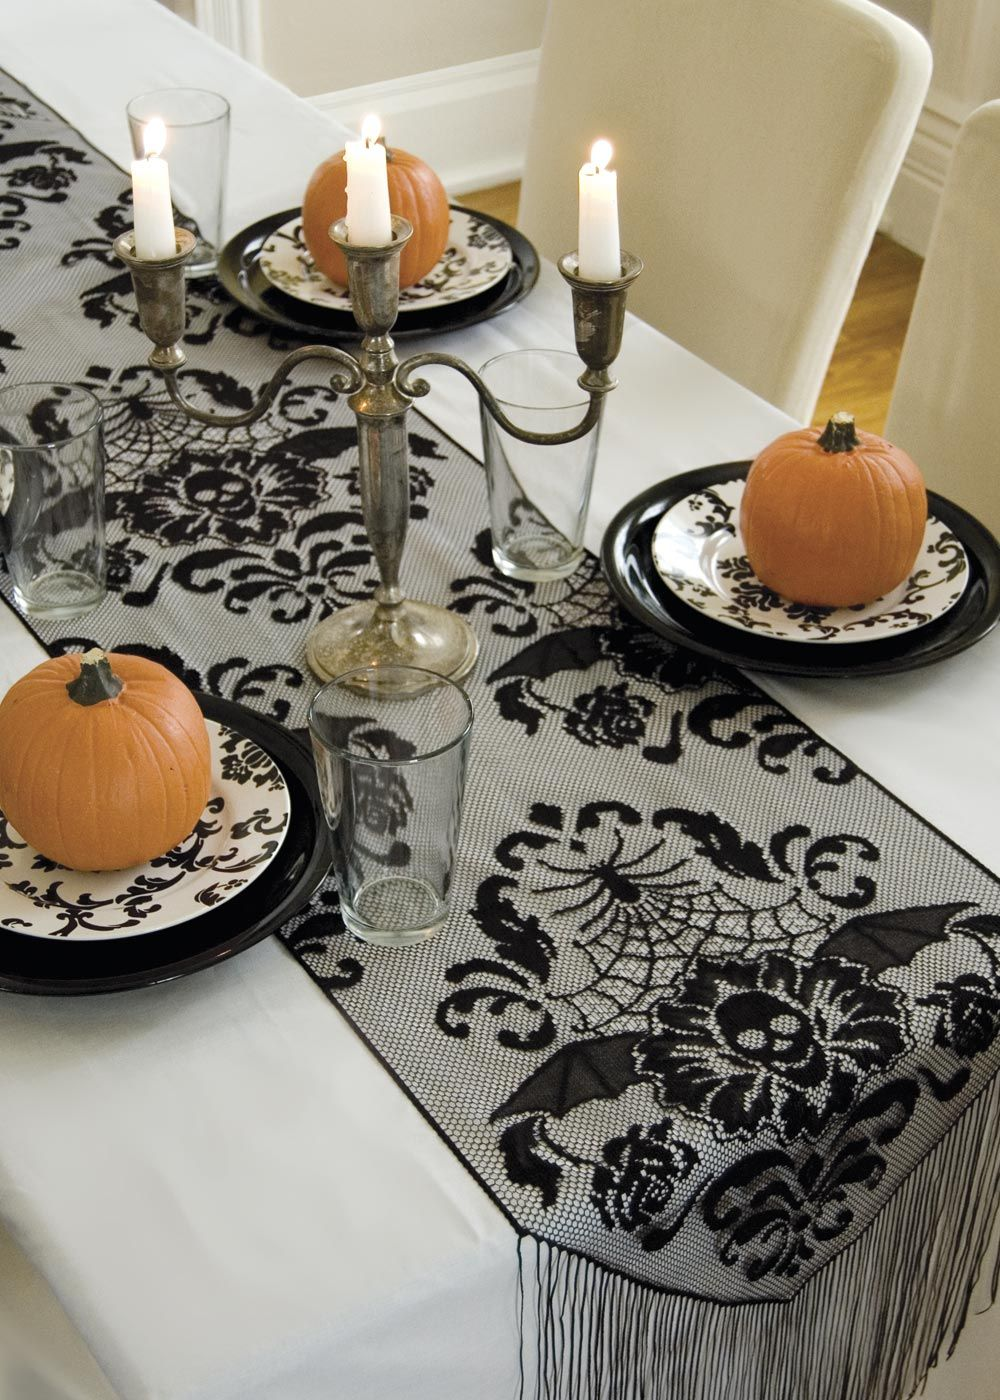 Charmant Halloween Damask Runner By Heritage Lace. #lace #halloween #decor #table